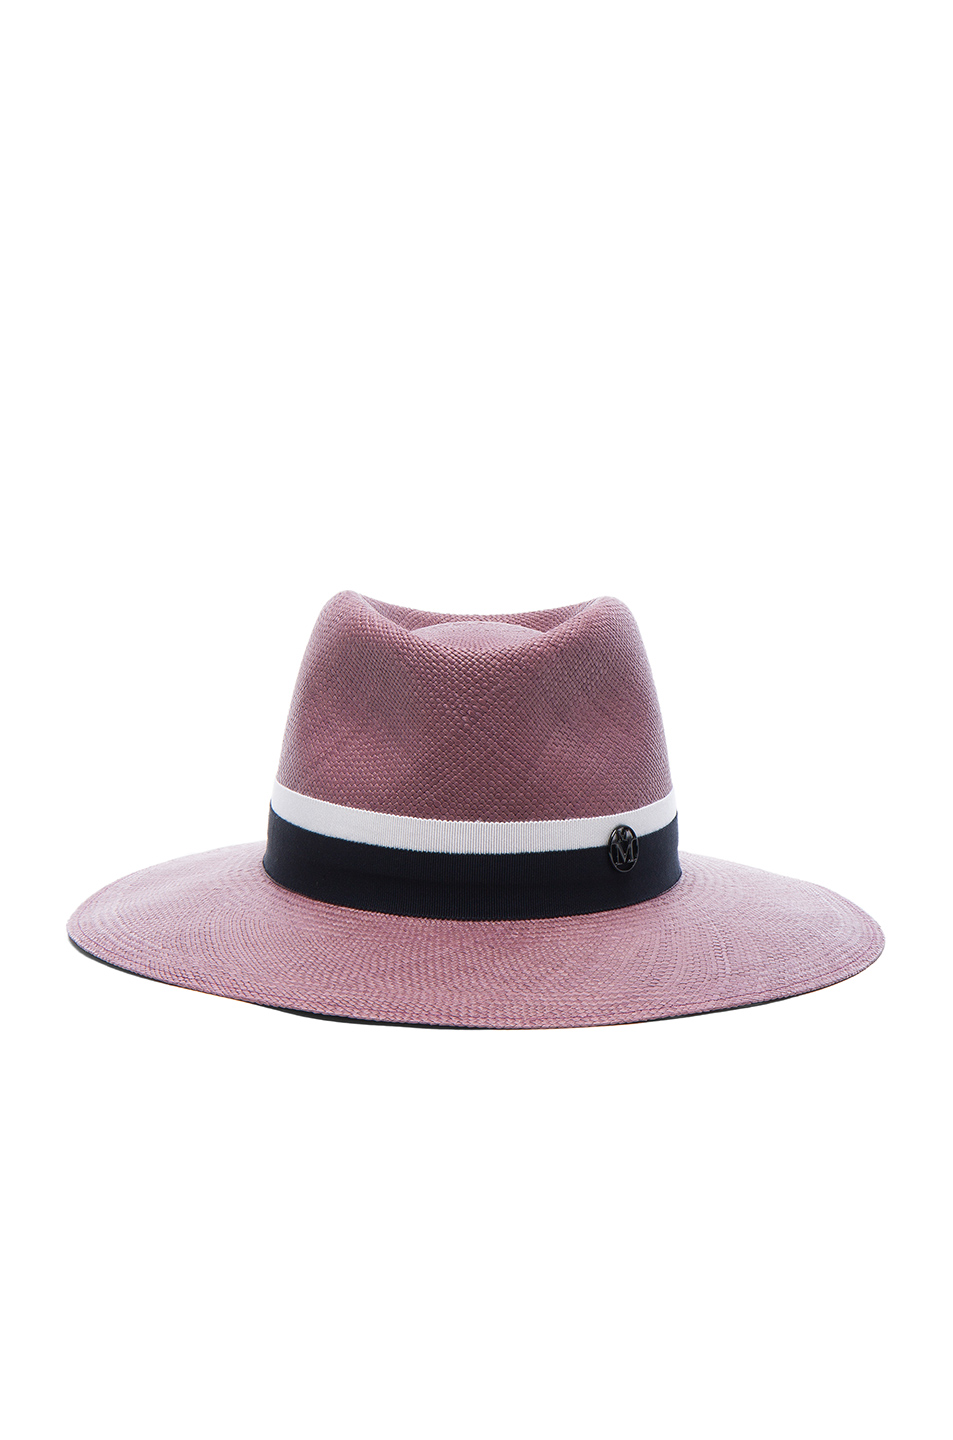 Maison Michel Charles Hat in Pink